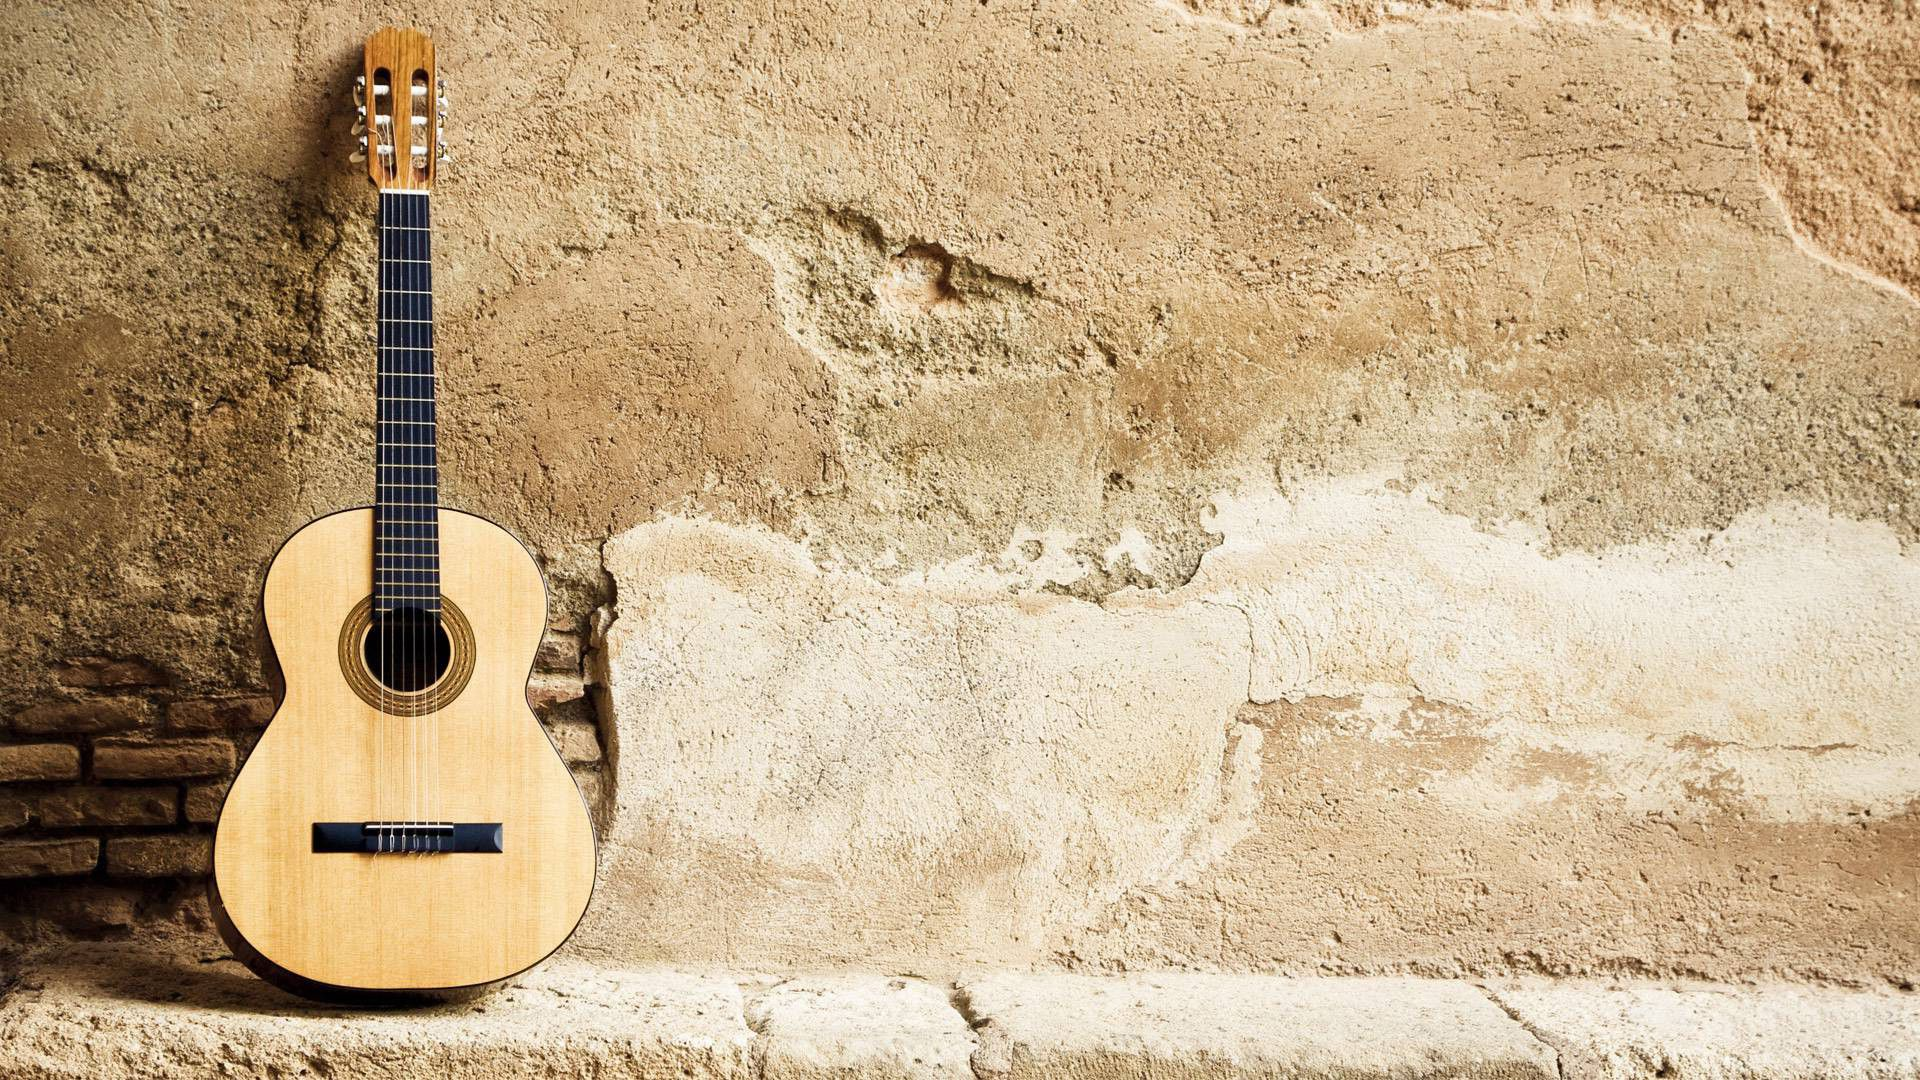 Acoustic Guitars Wallpaper High Quality For Laptop Wallpaper Download Wallpaper Laptop Hd Guitar Pics Acoustic Guitar Guitar